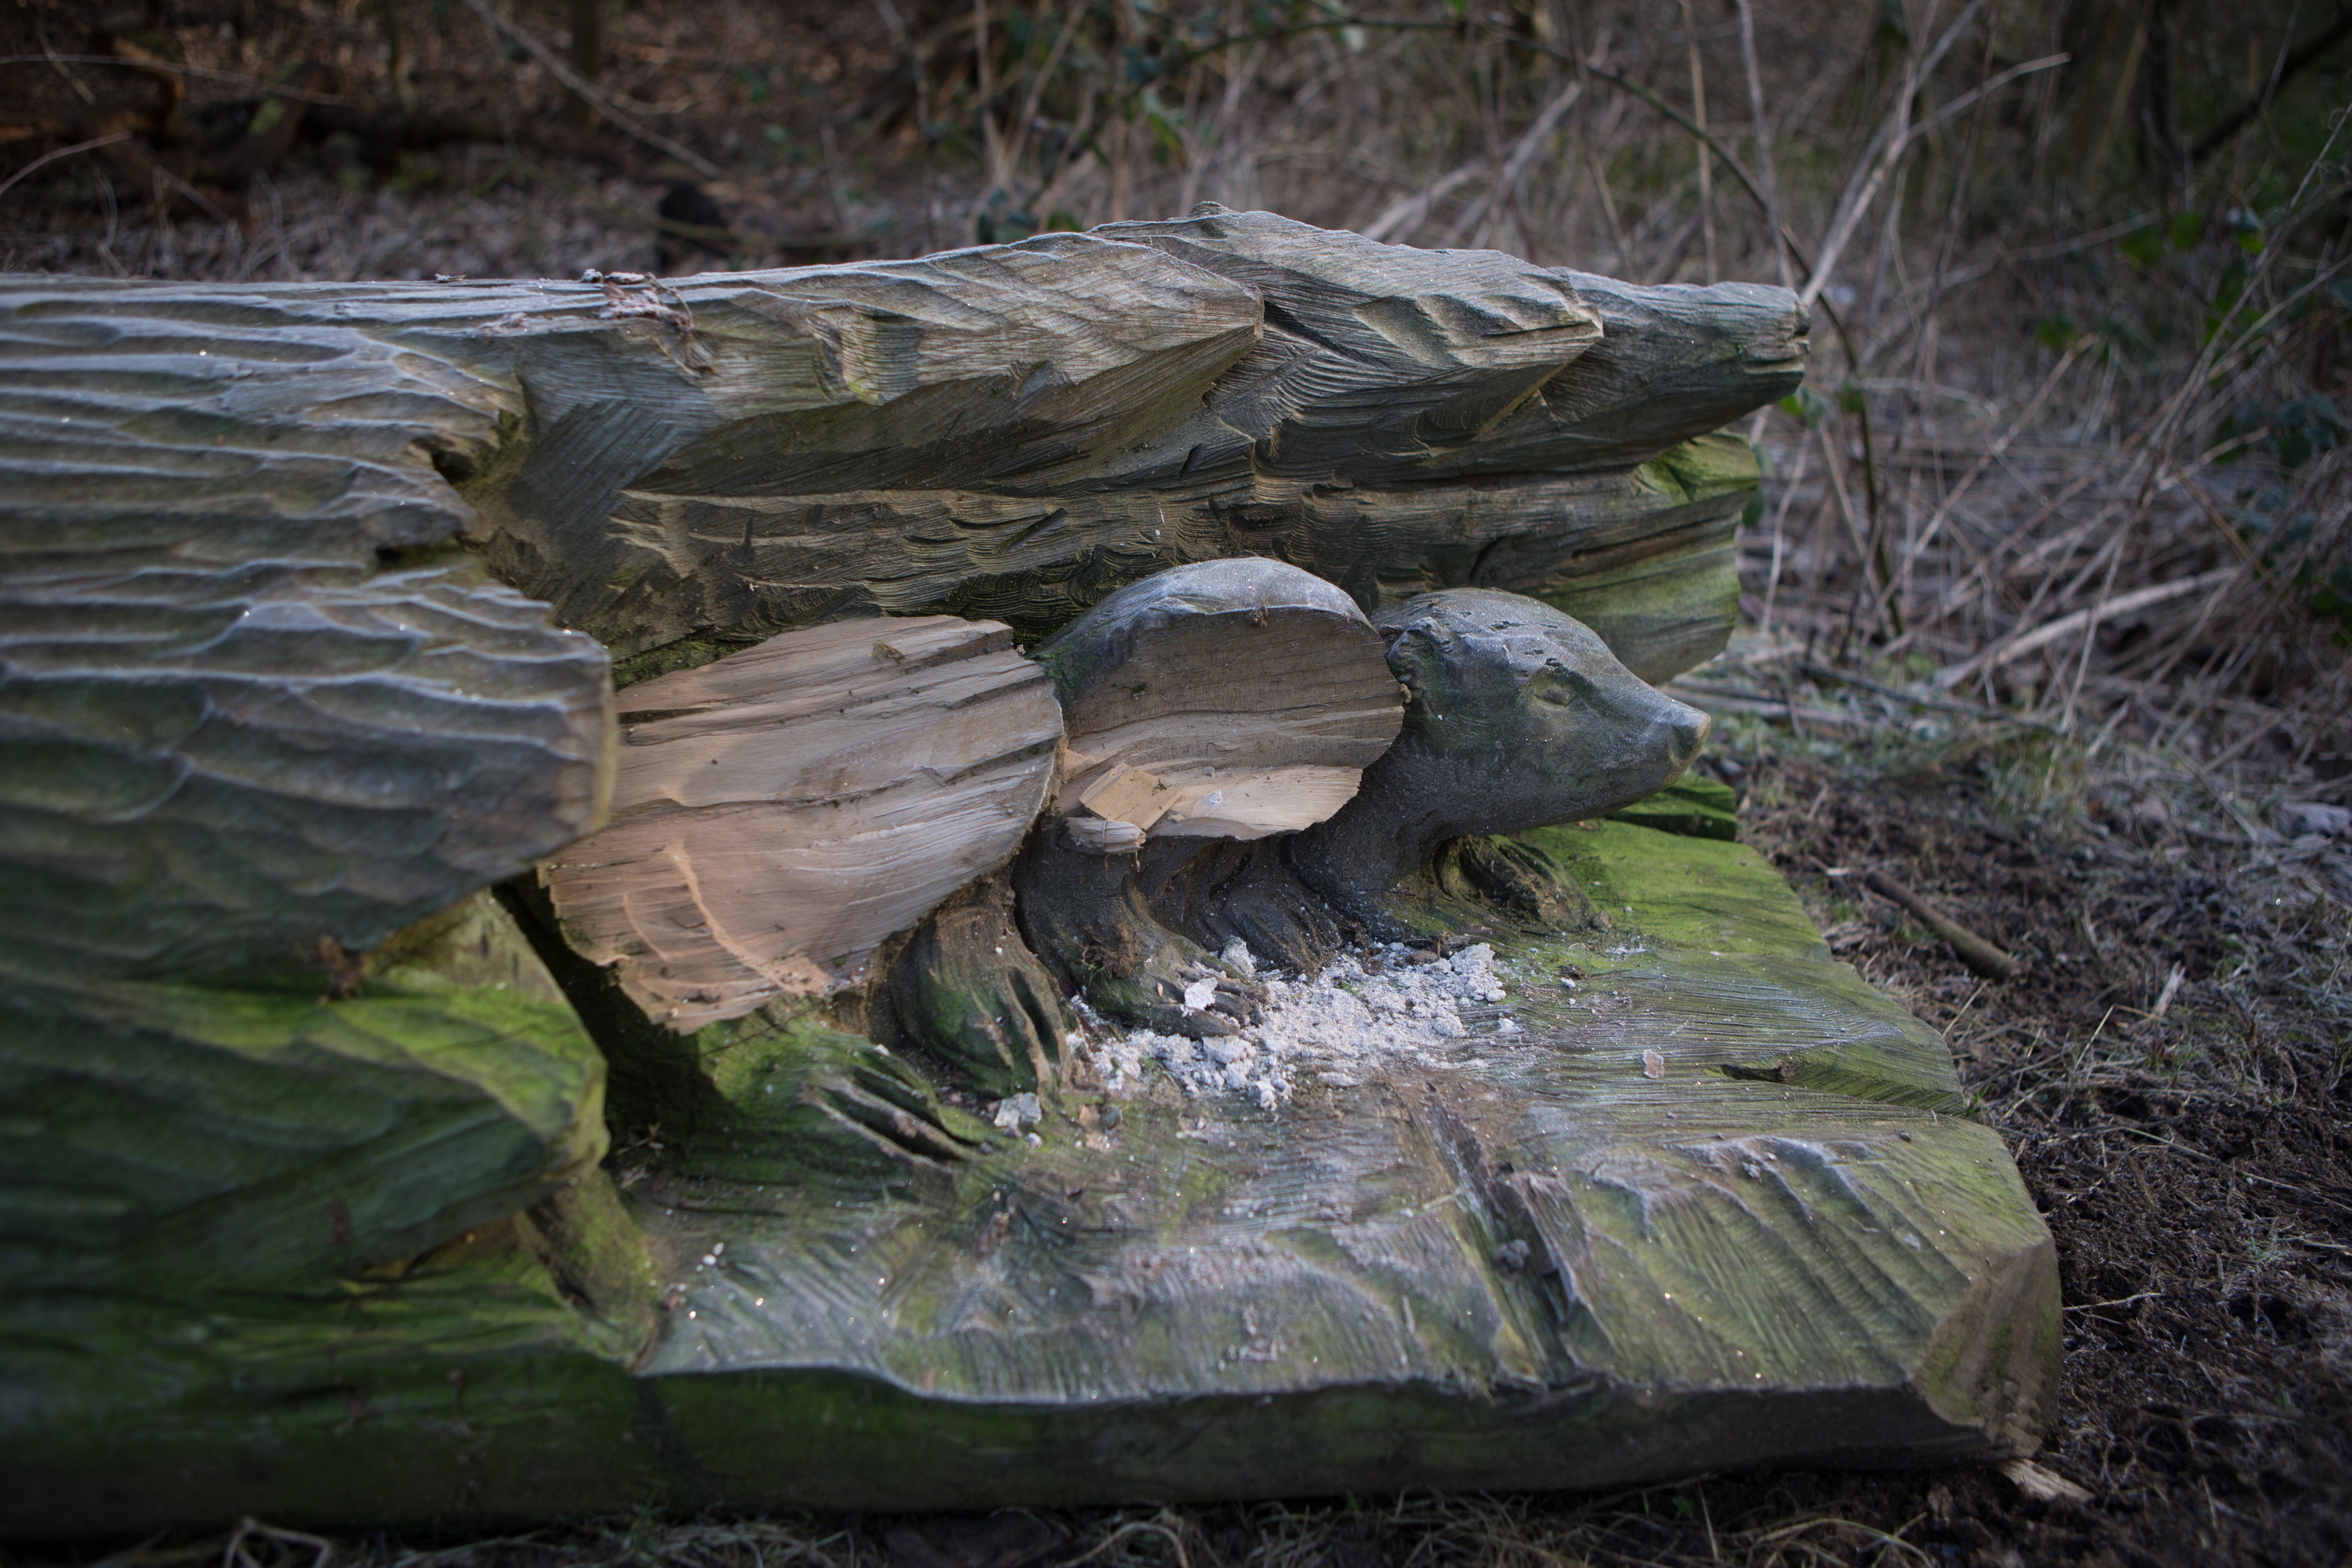 Damage to the Badger Sculpture in Rabbit Braes, Kirkcaldy.